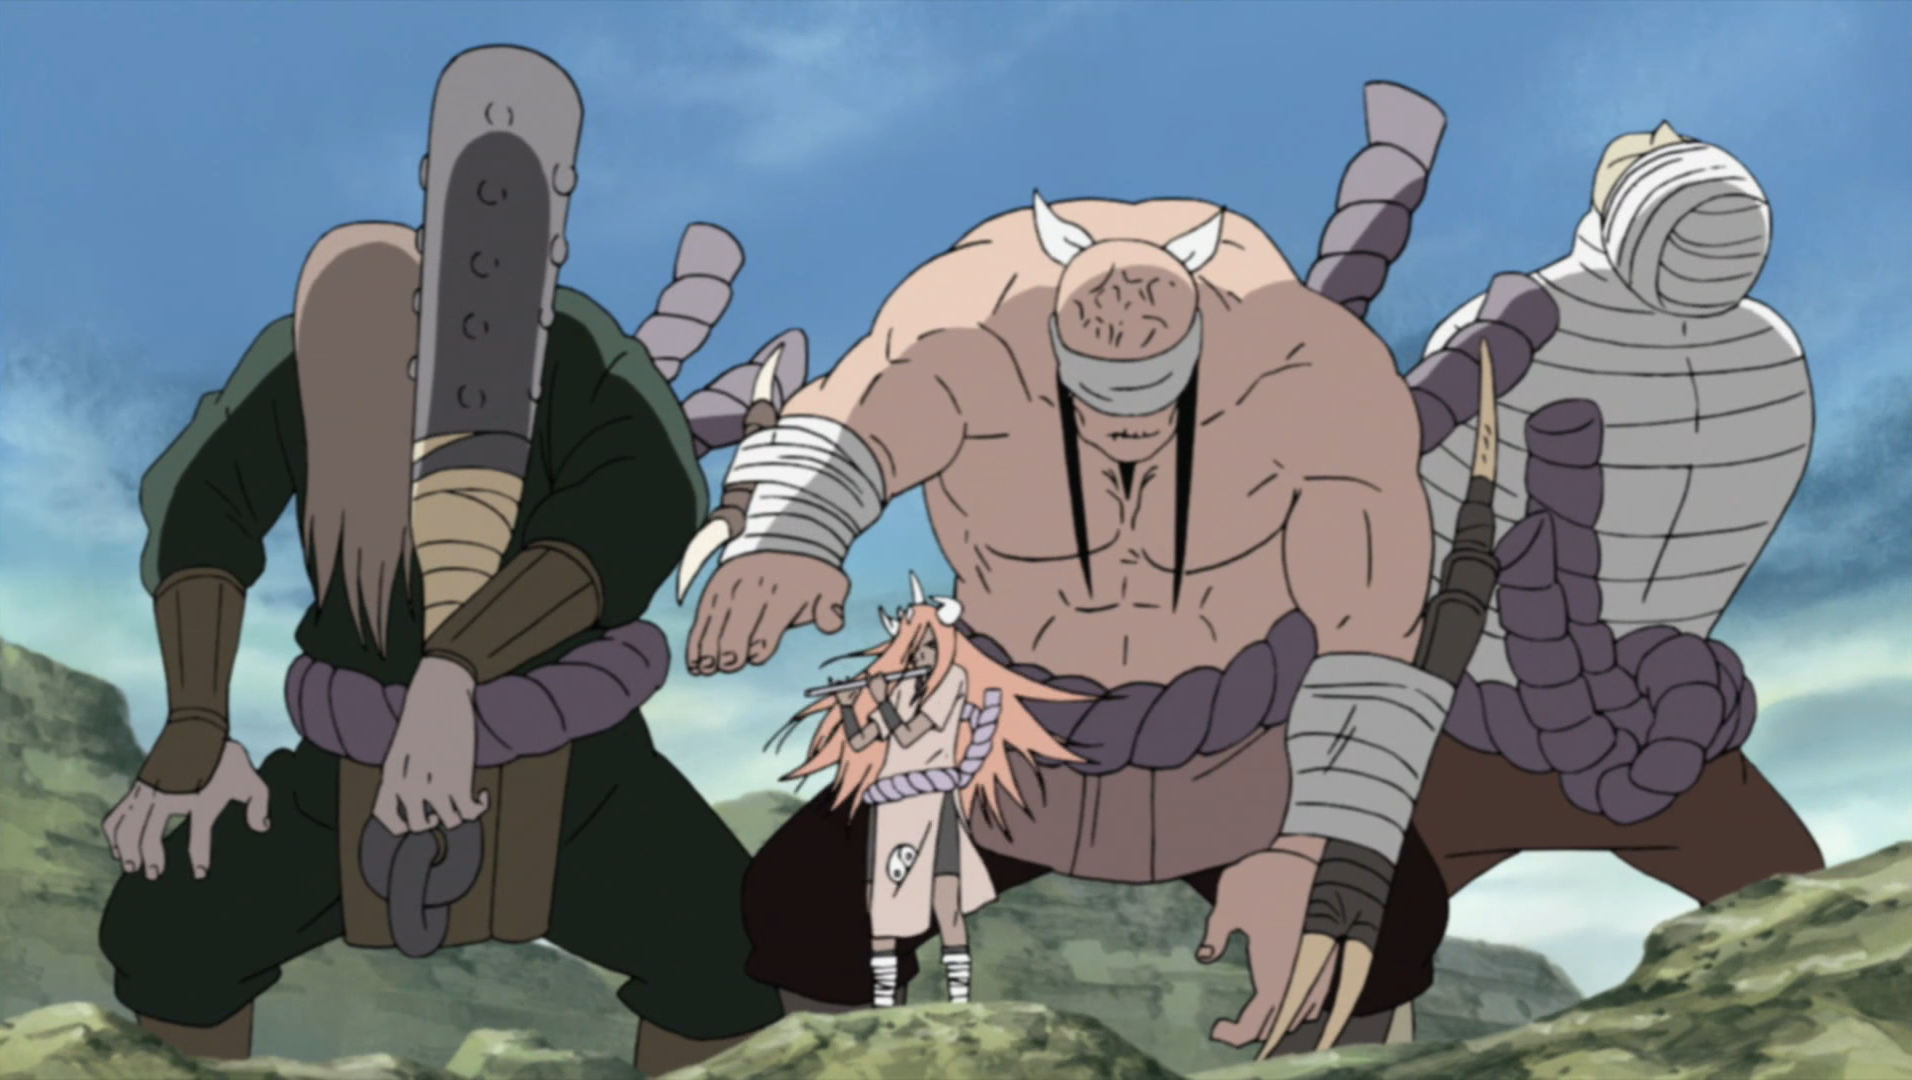 https://vignette.wikia.nocookie.net/naruto/images/2/2c/Doki.png/revision/latest?cb=20150220084440